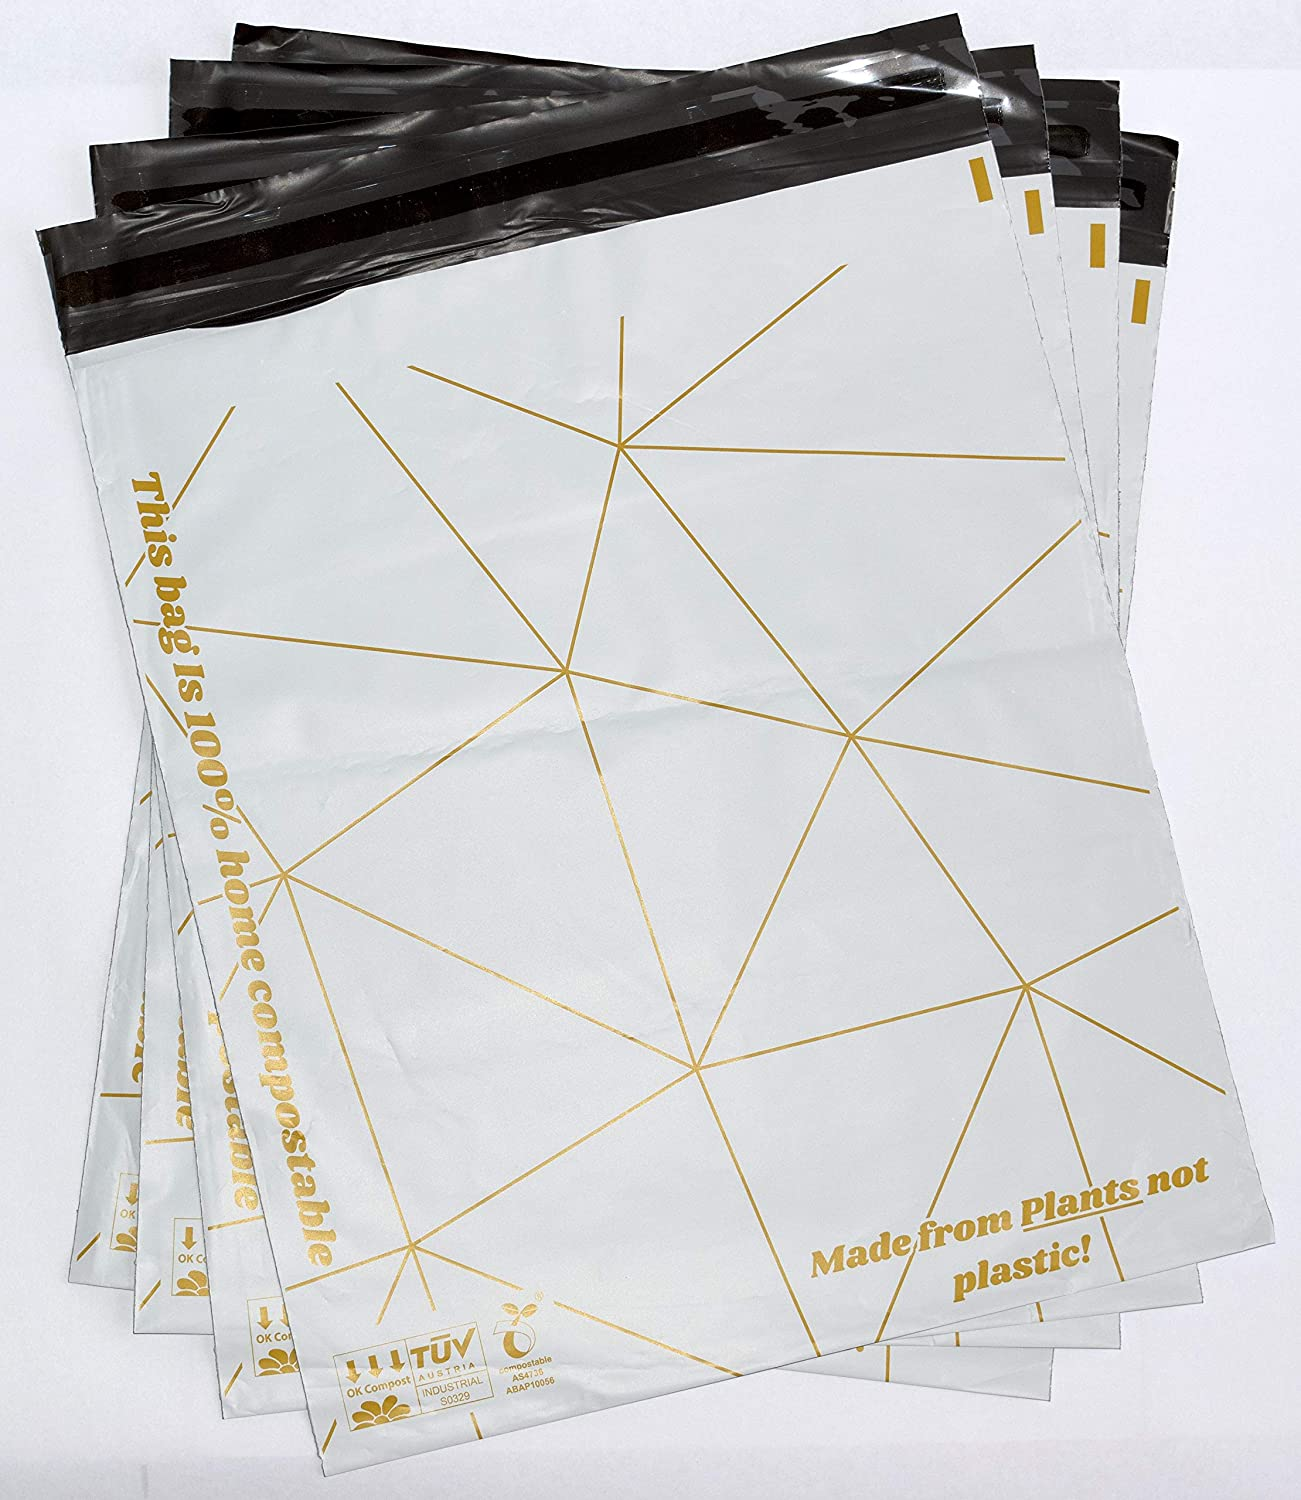 12.5x15in (50pcs) - Biodegradable Compostable Mailers - Eco-Friendly PolyBags/Mailer for Shipping - Small Business Packaging - Packaging Bags for Shipping